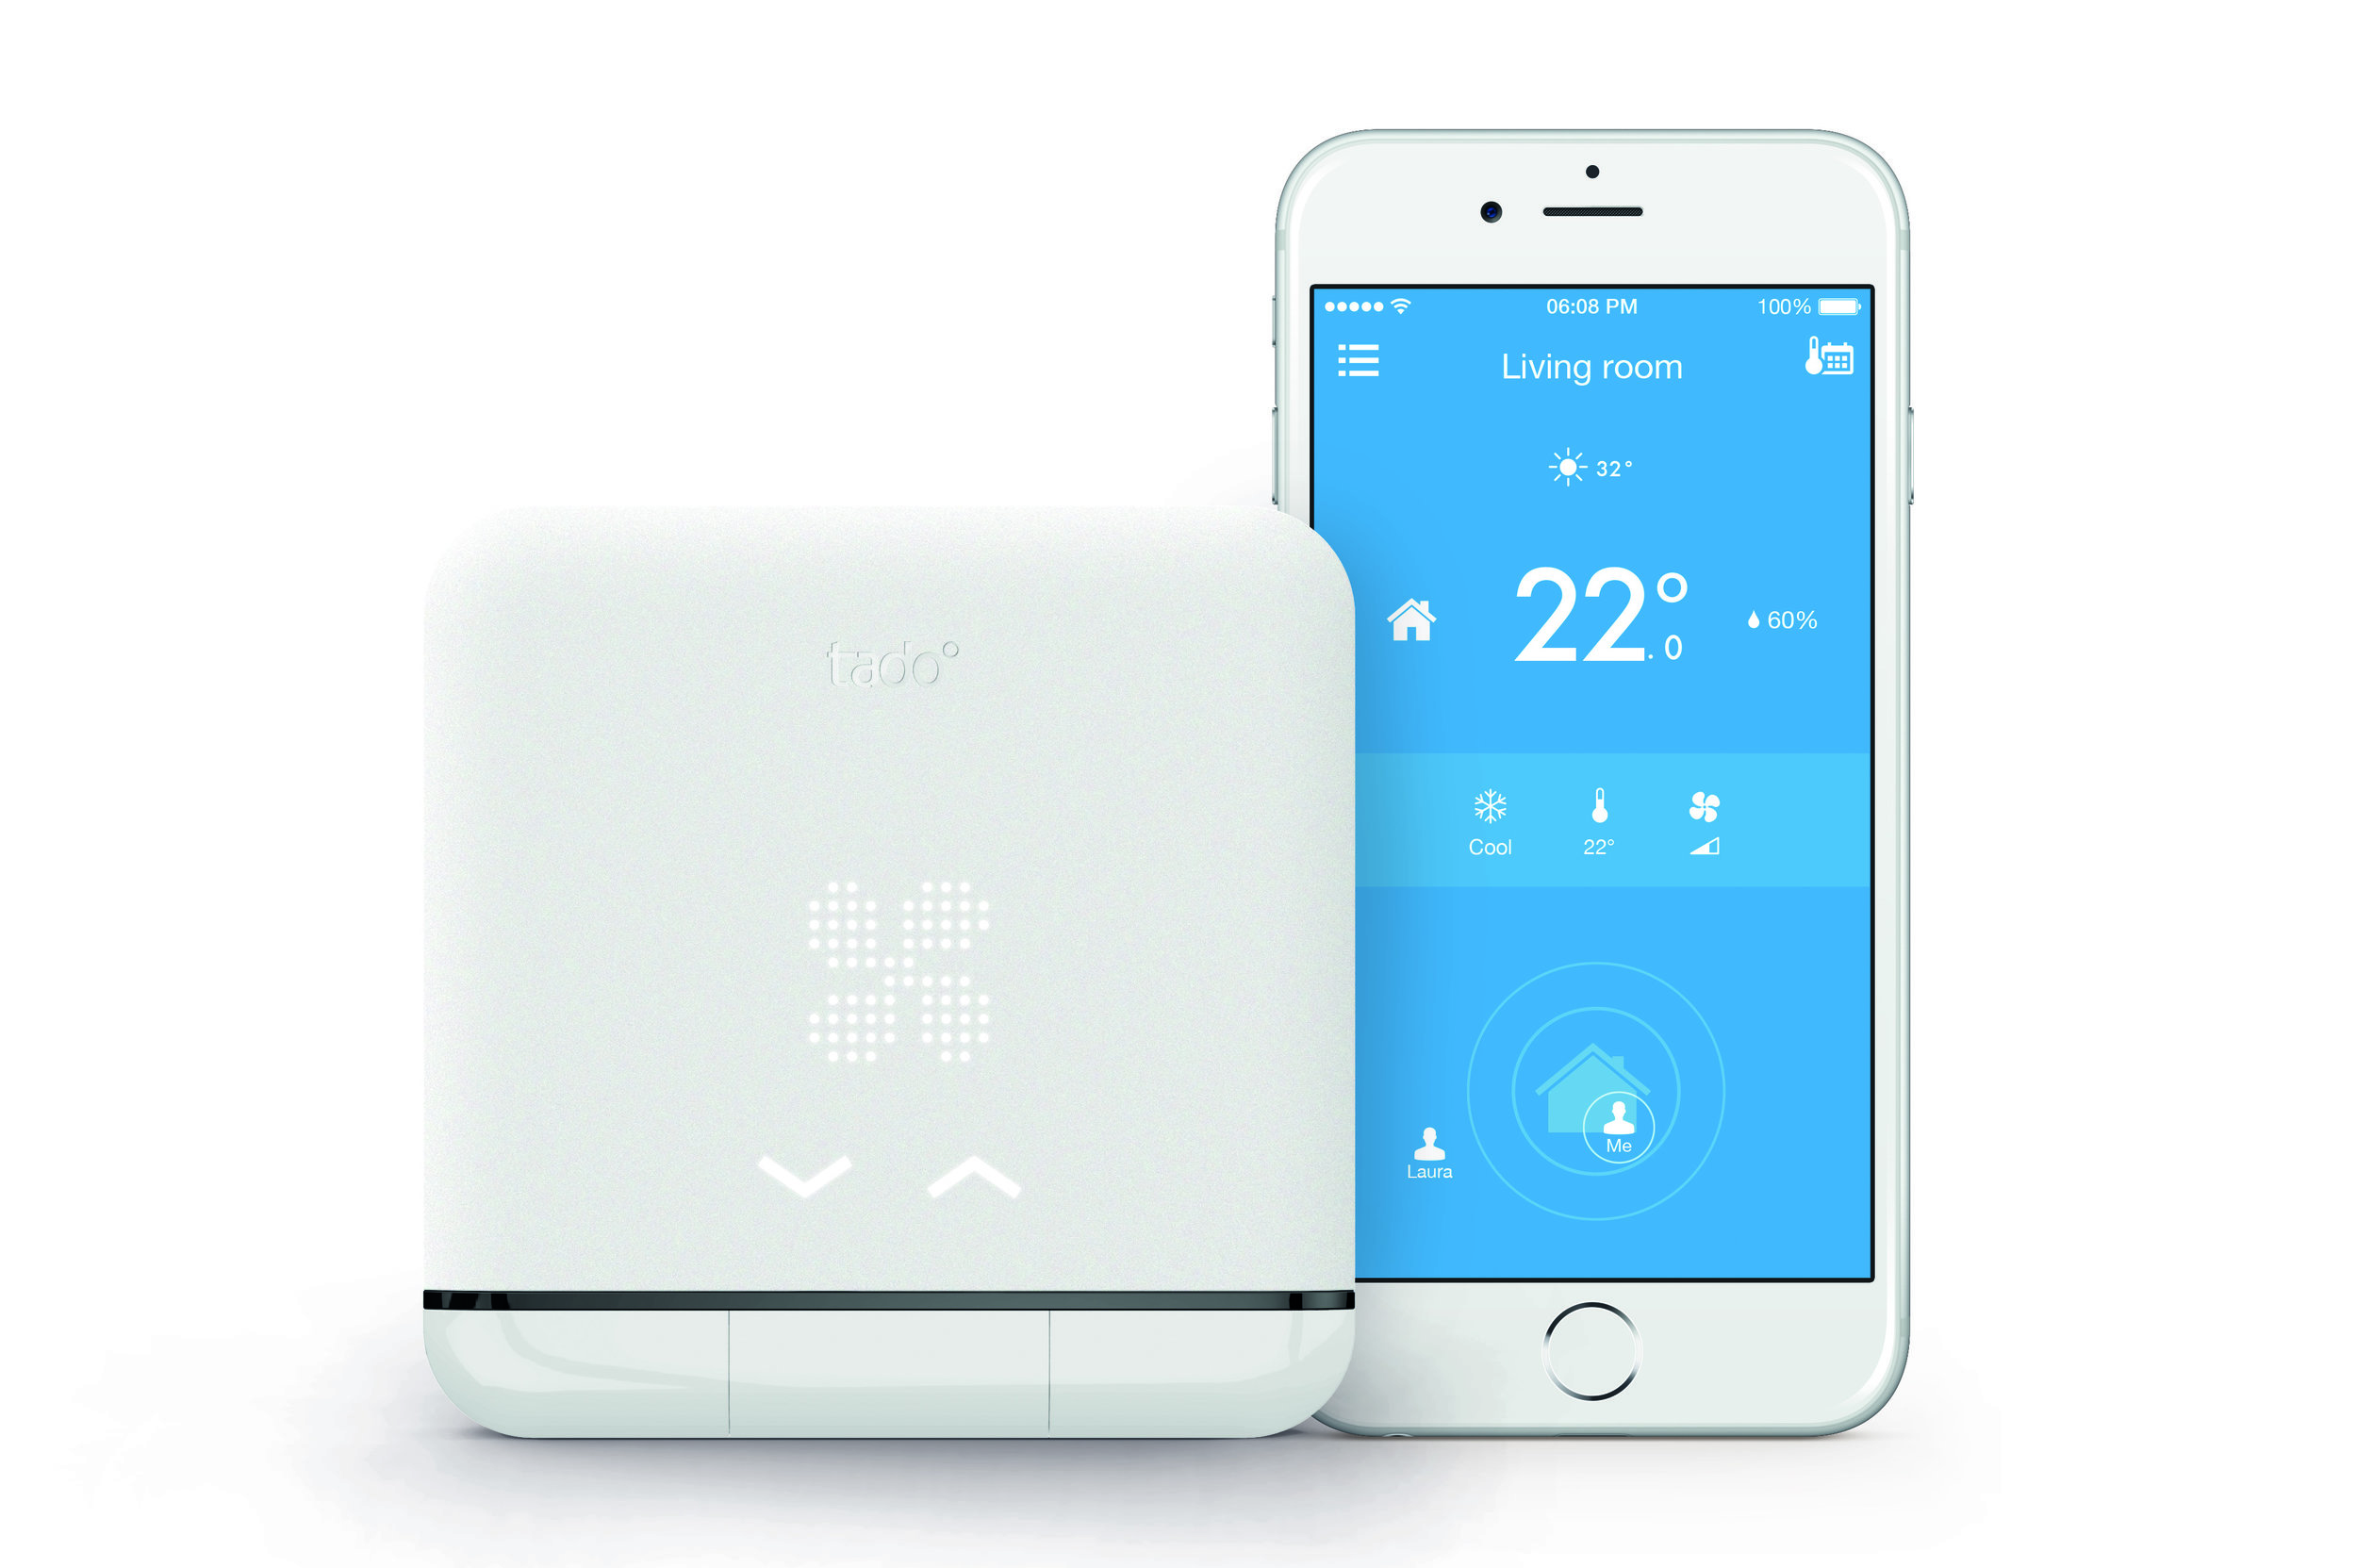 tado_Smart_AC_Control_Product_device_and_app_SG.jpg